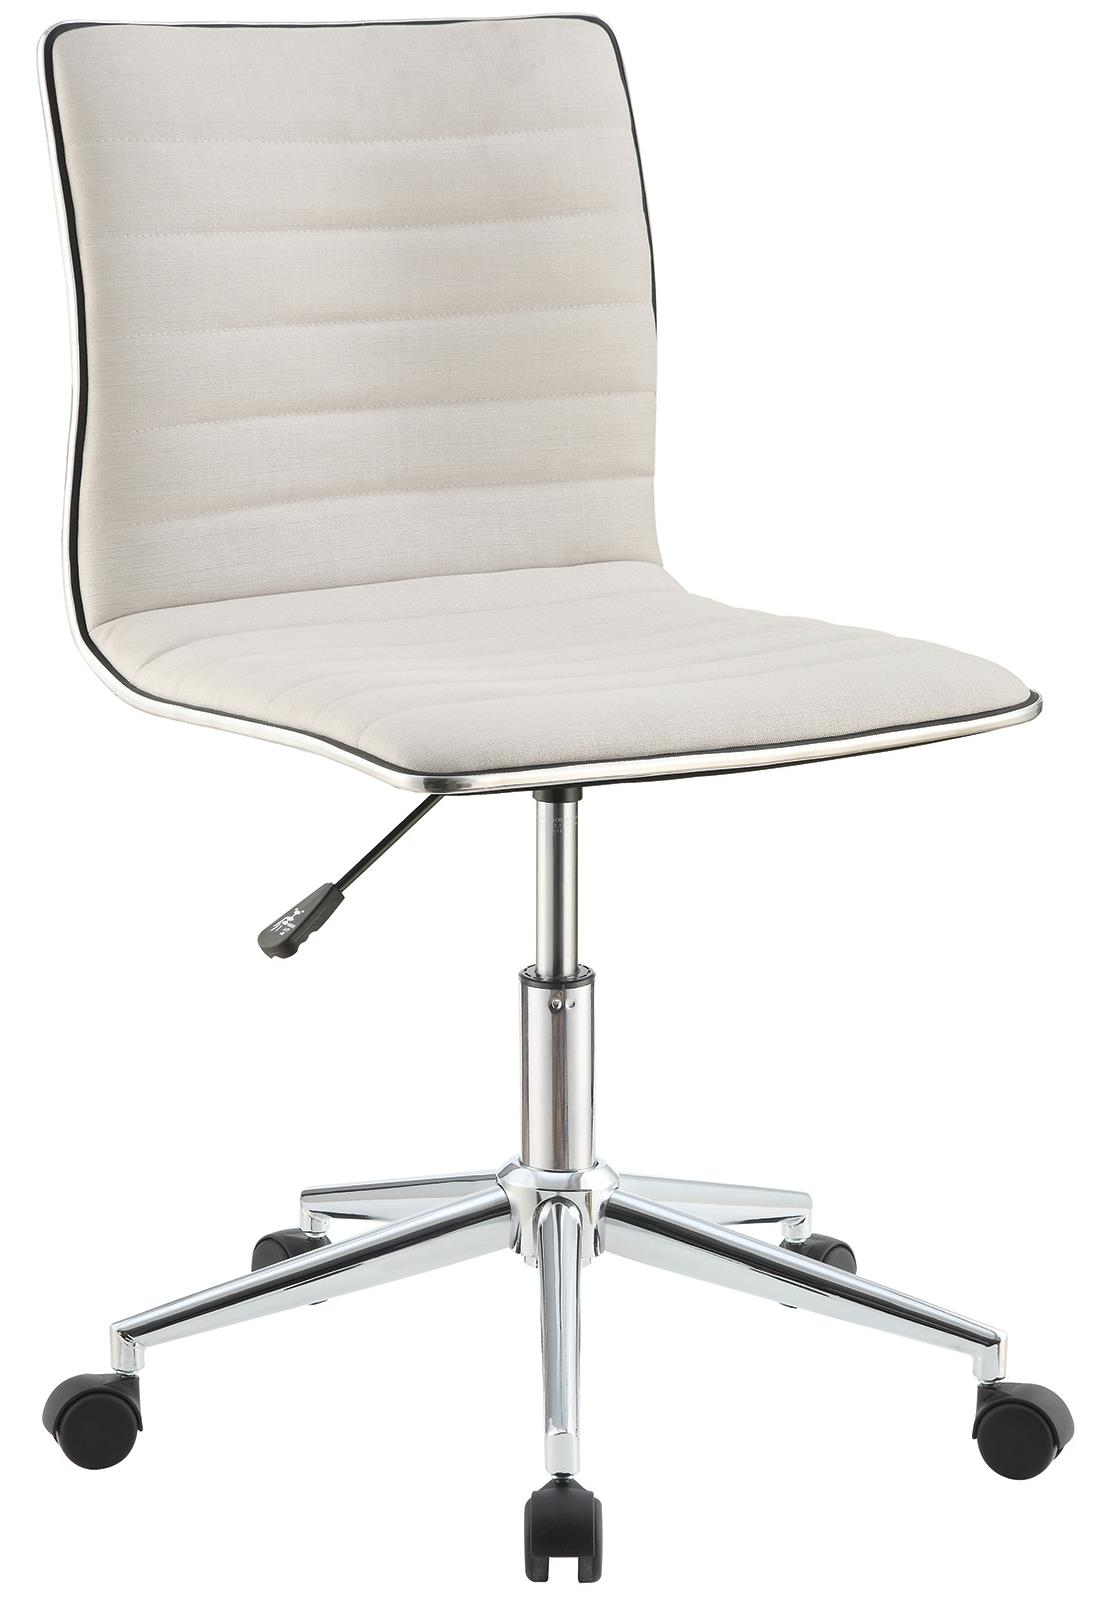 products_coaster_color_office chairs_800726-b1